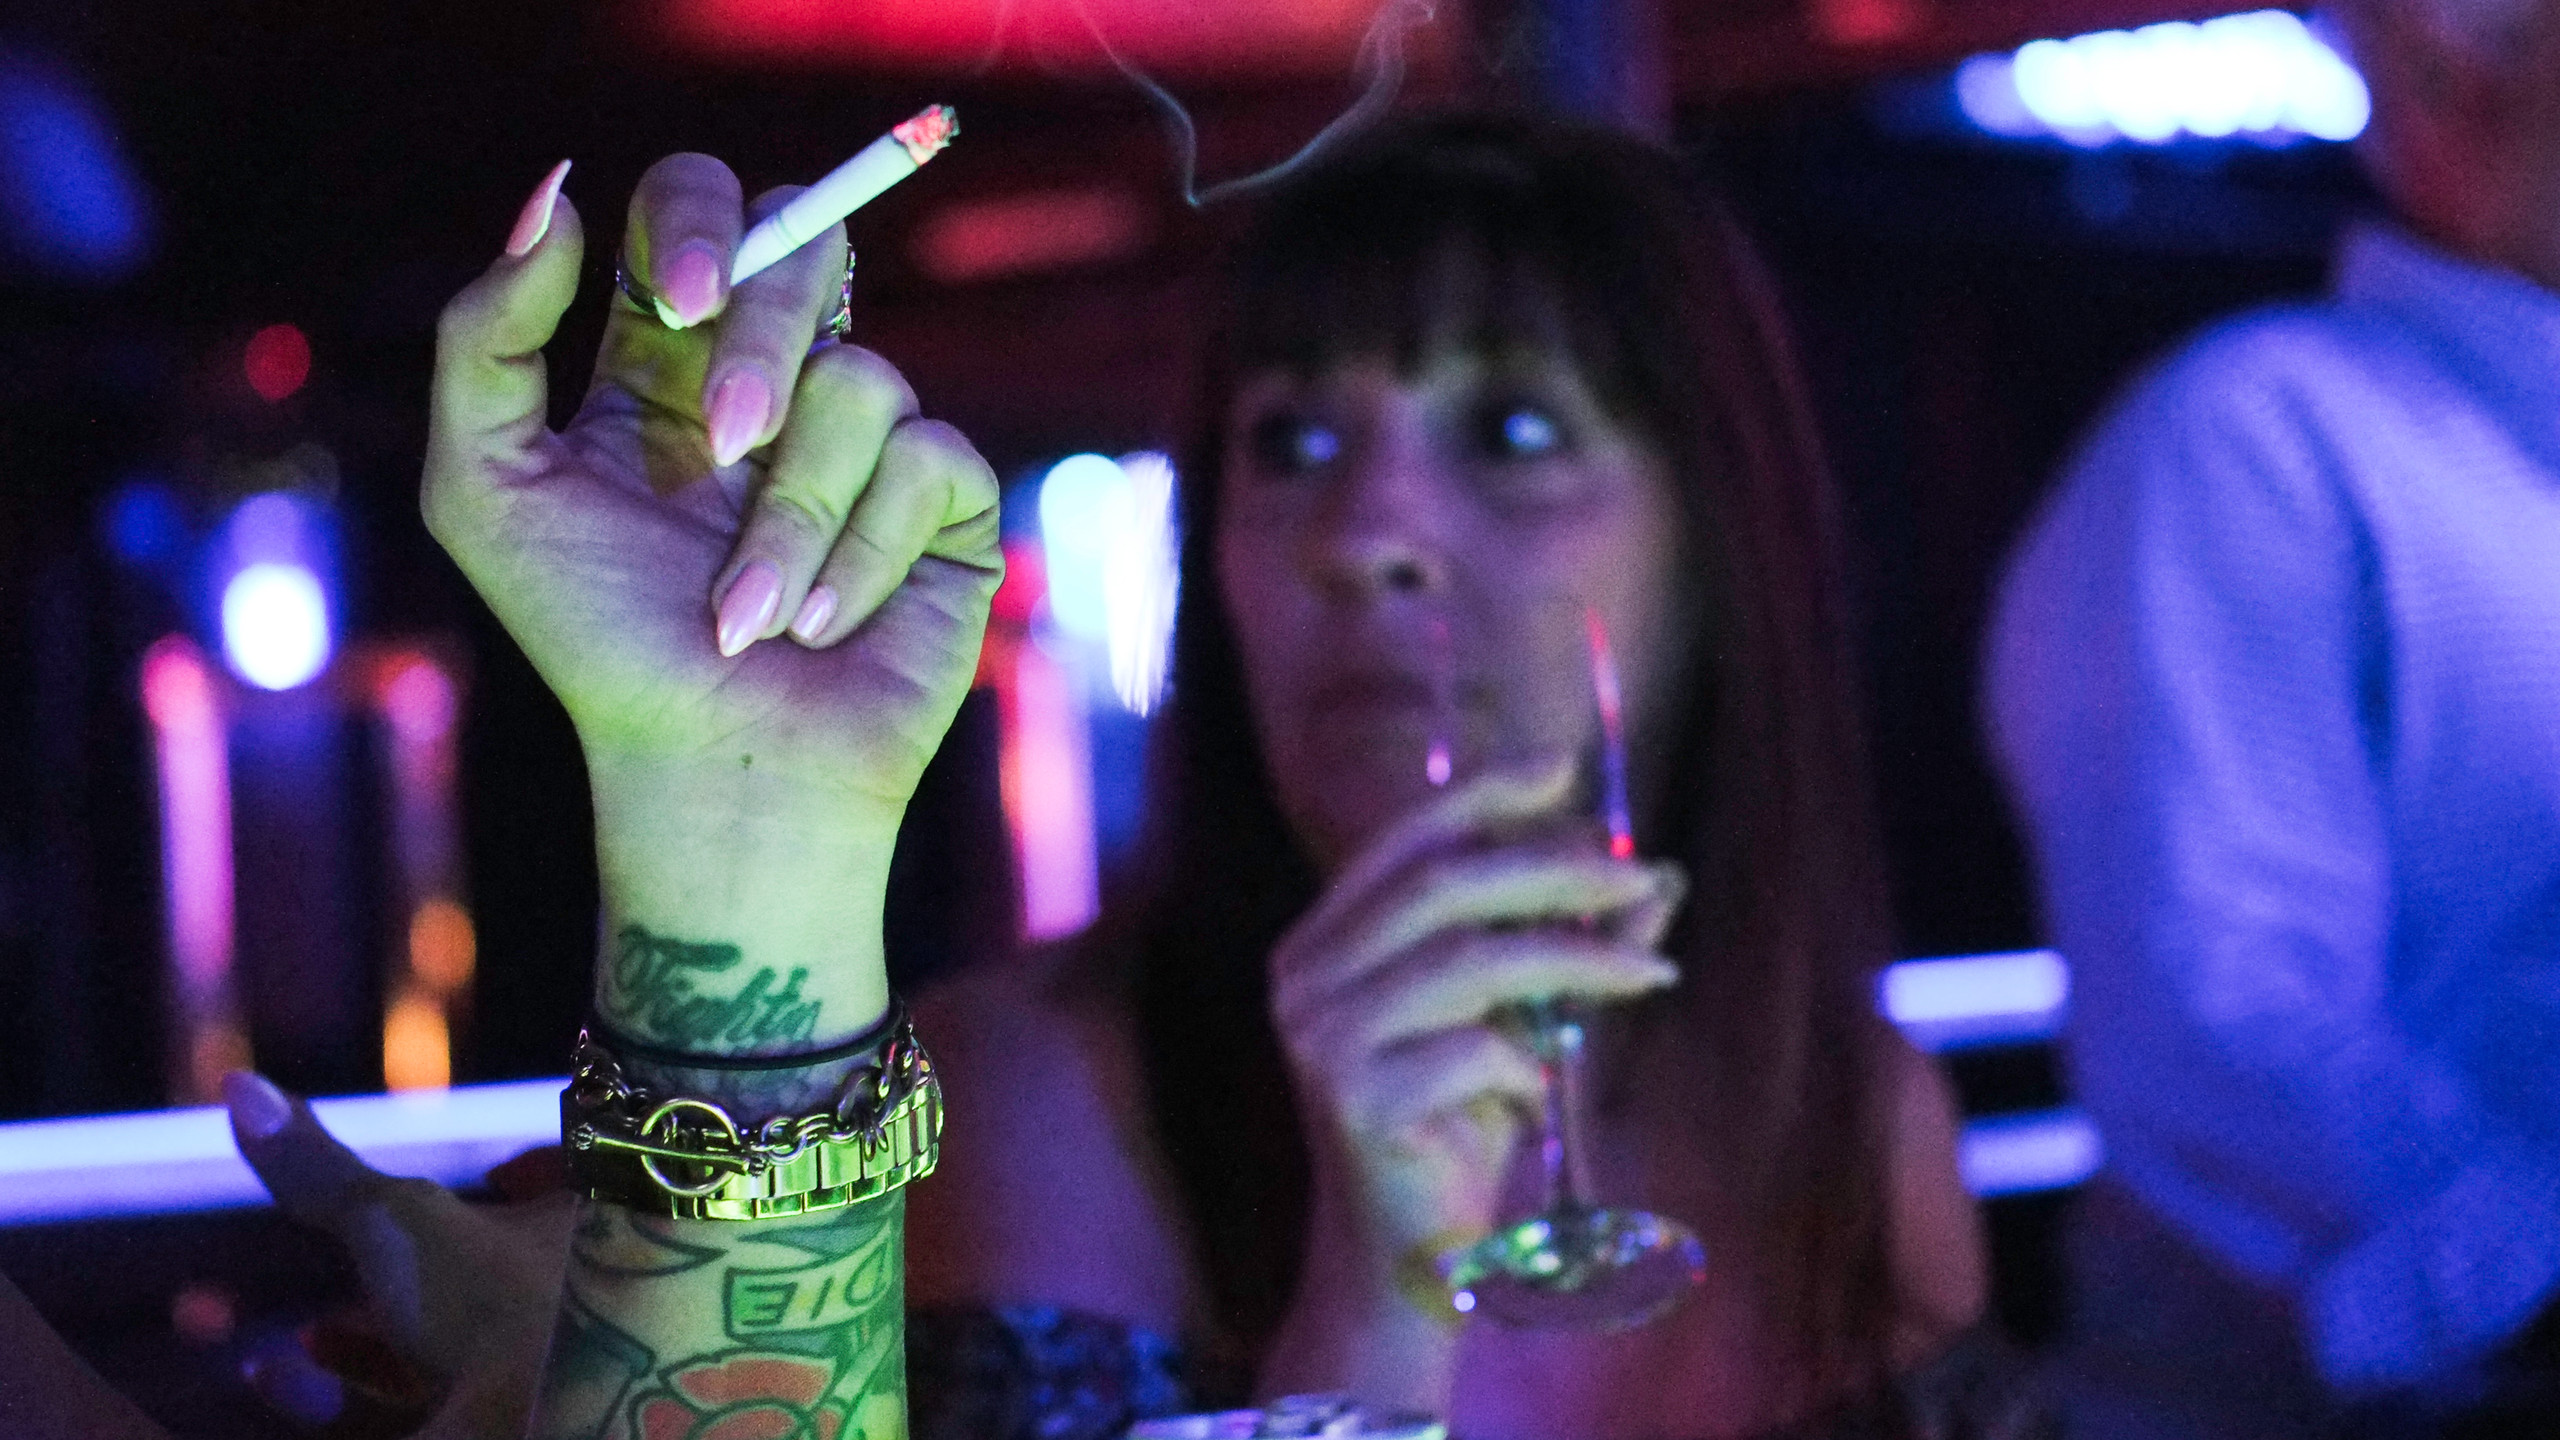 Smoking and drinking are a large part of the strip club experience. Dancers are encouraged to have customers buy them drinks in order to increase the club's profits. Here, Charleen and Jet are seen smoking and drinking at the bar.